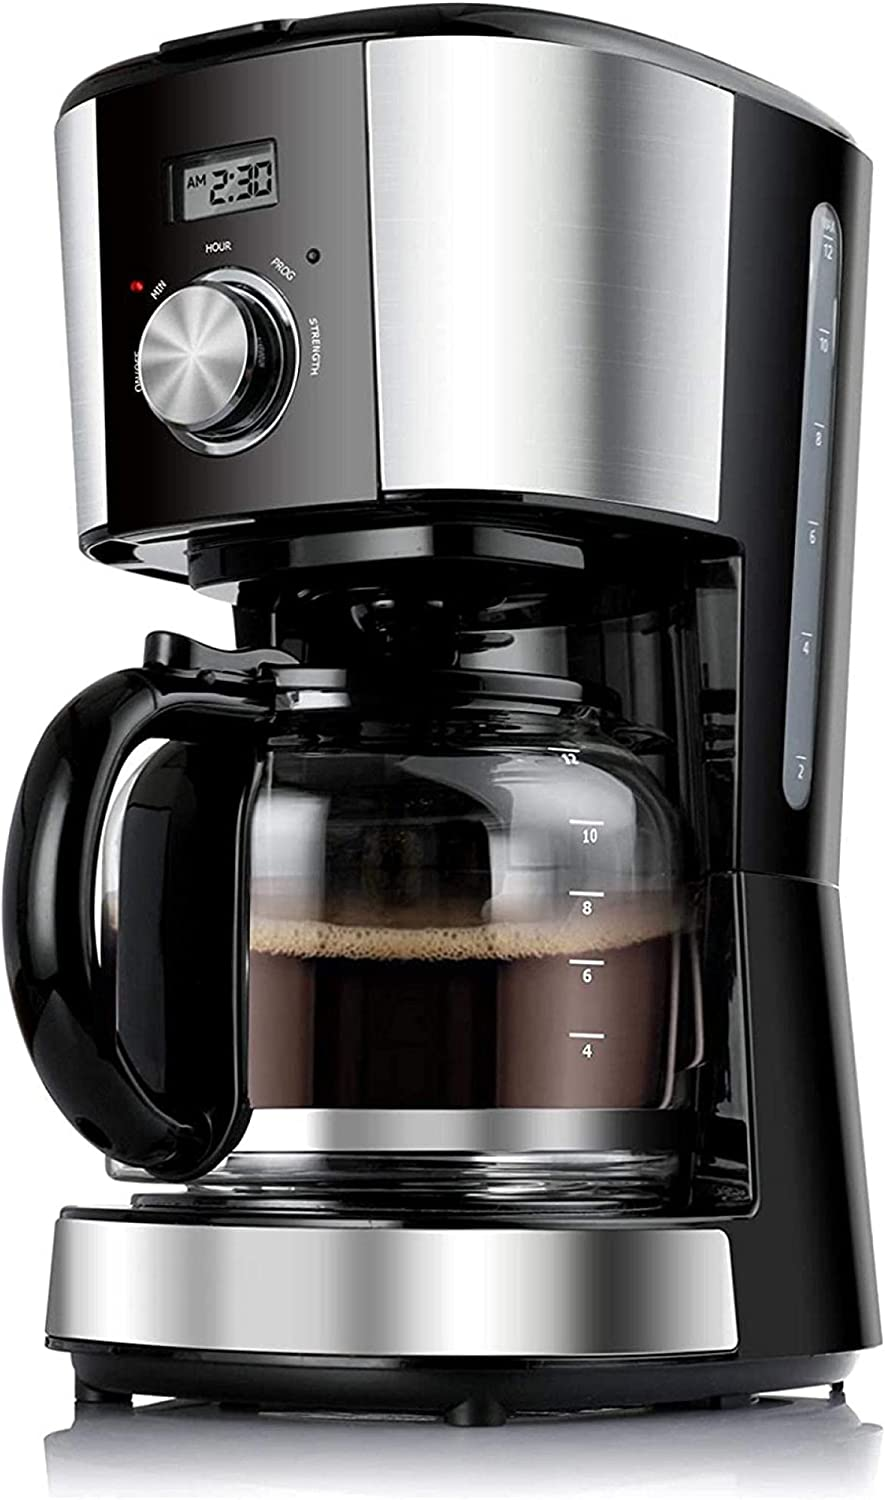 12-Cup Coffee Maker with Glass Carafe  Reusable Coffee Filter,